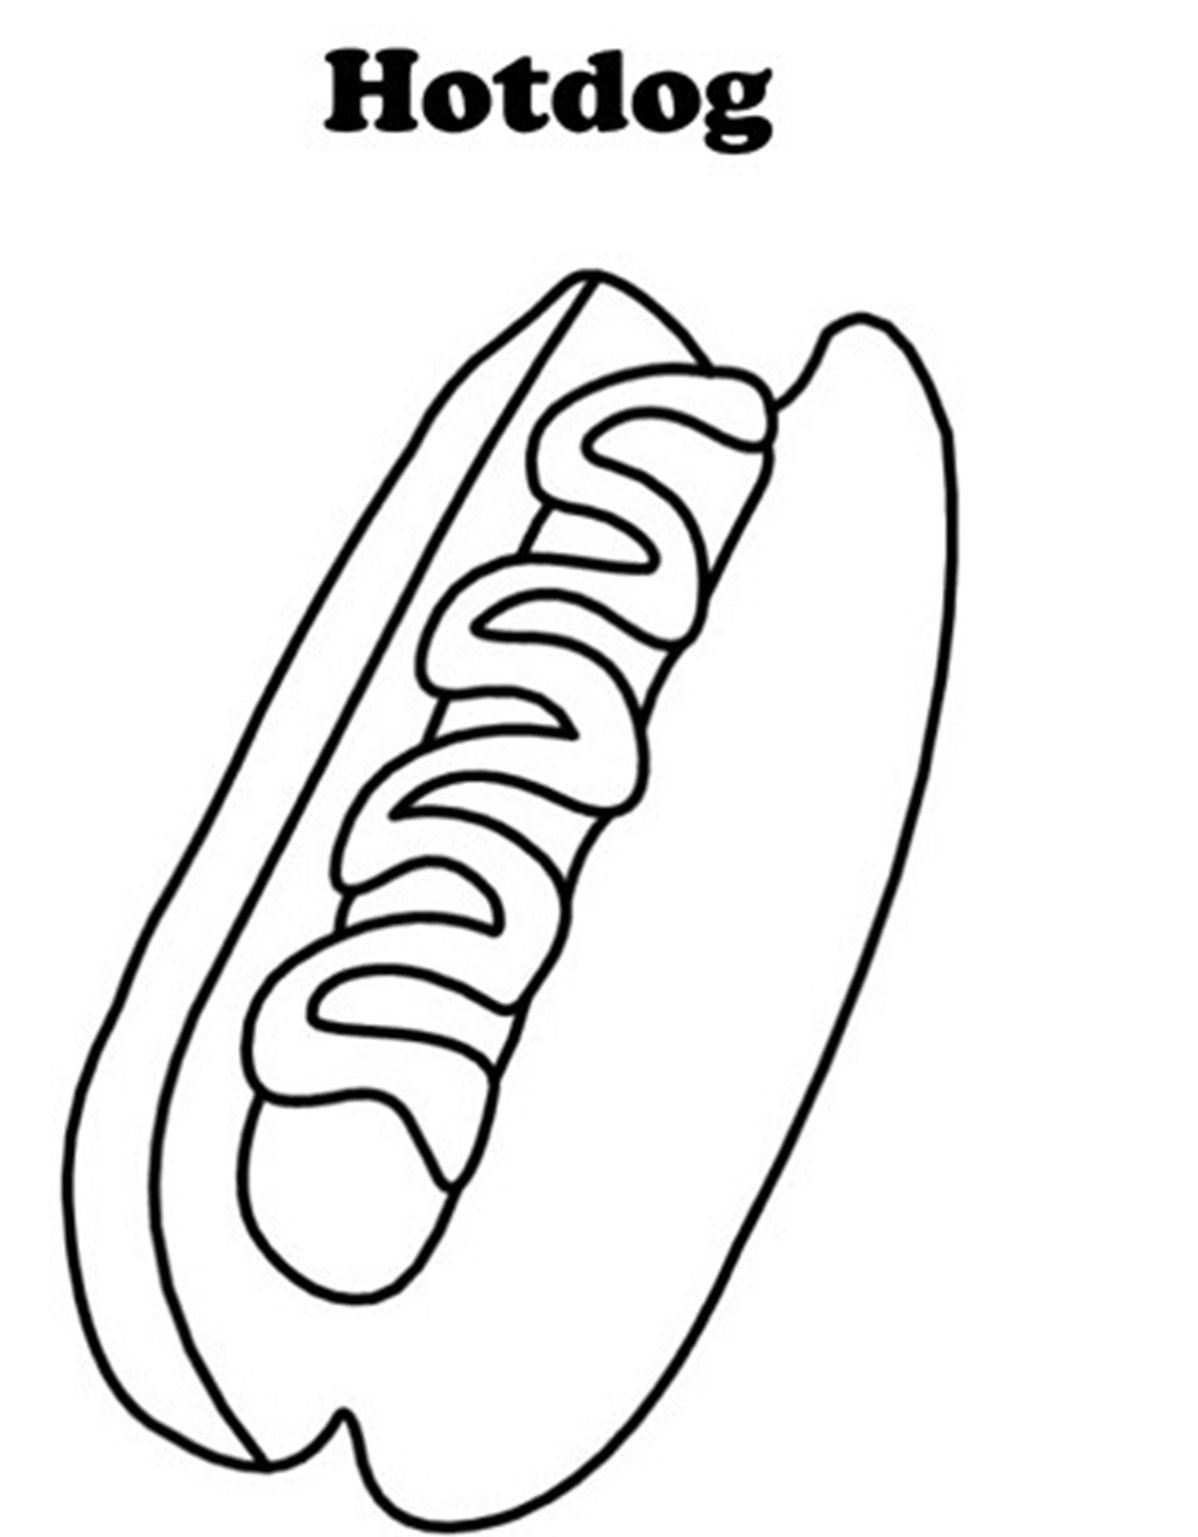 Hotdog Coloring Pages Of Food For Kids Id 72544 Uncategorized Dog Coloring Page Coloring Pages Inspirational Food Coloring Pages